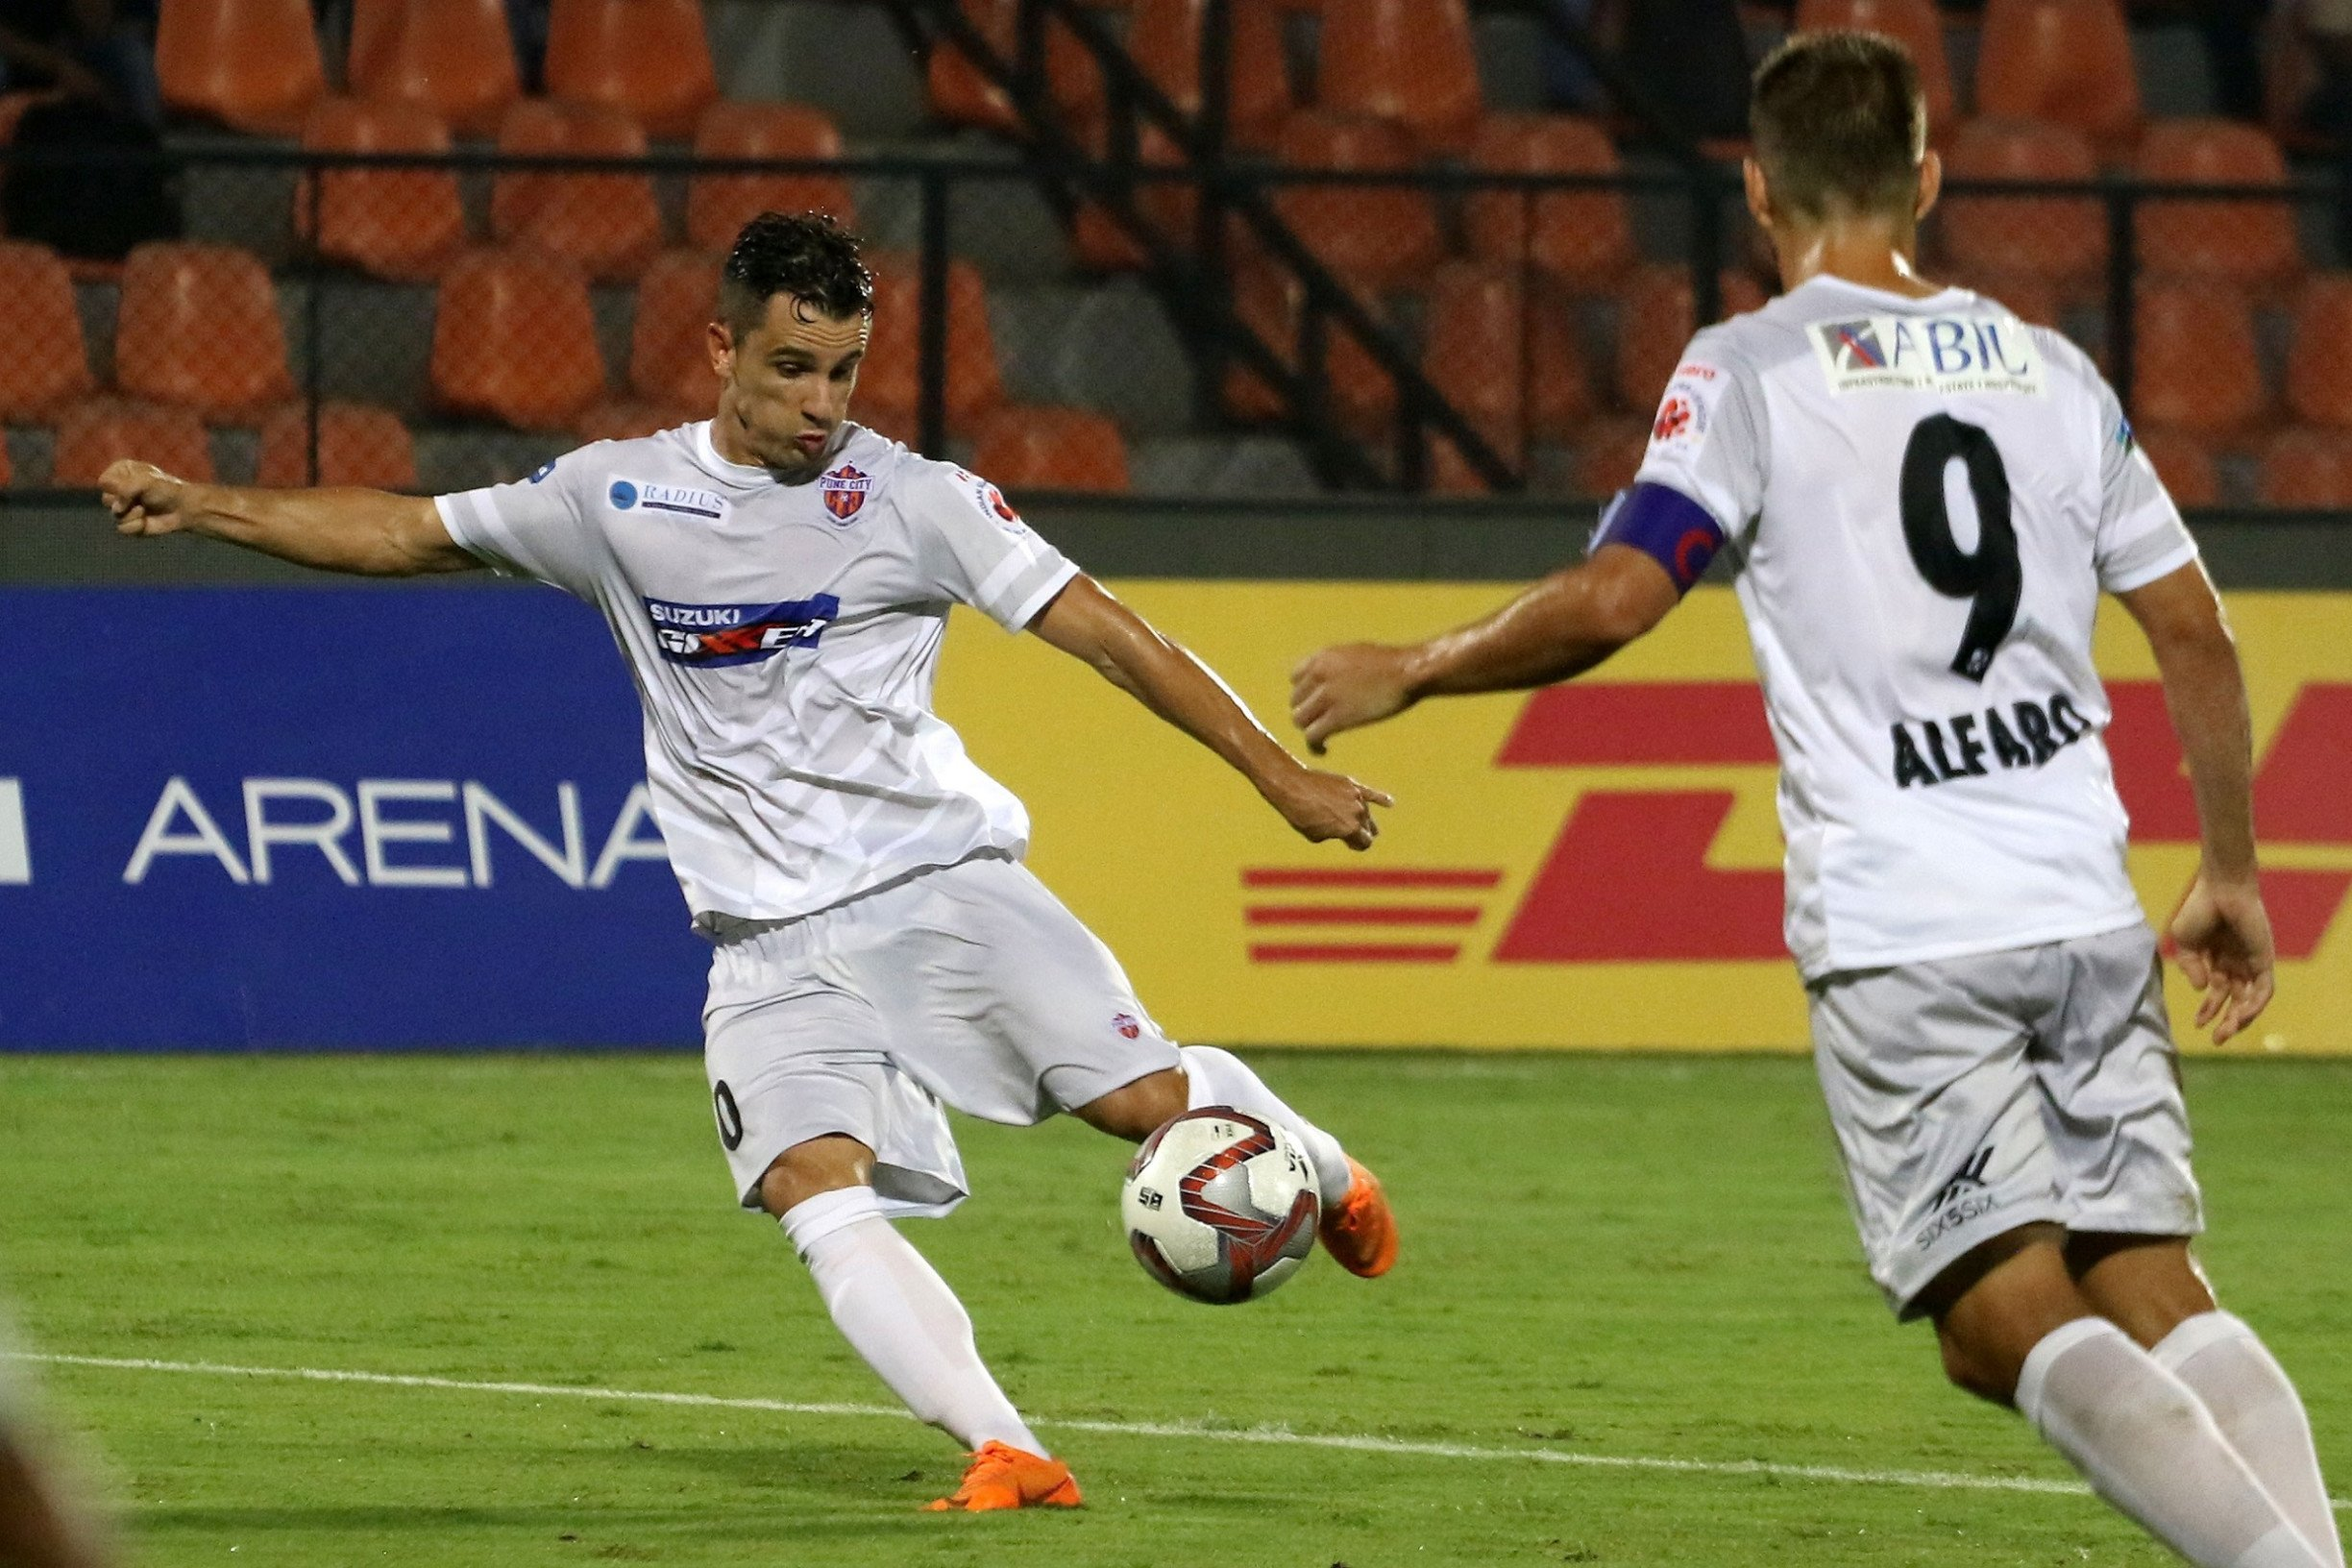 Hero ISL 2018/19: Mumbai City FC register their first victory of the season after a 2-0 win against FC Pune City